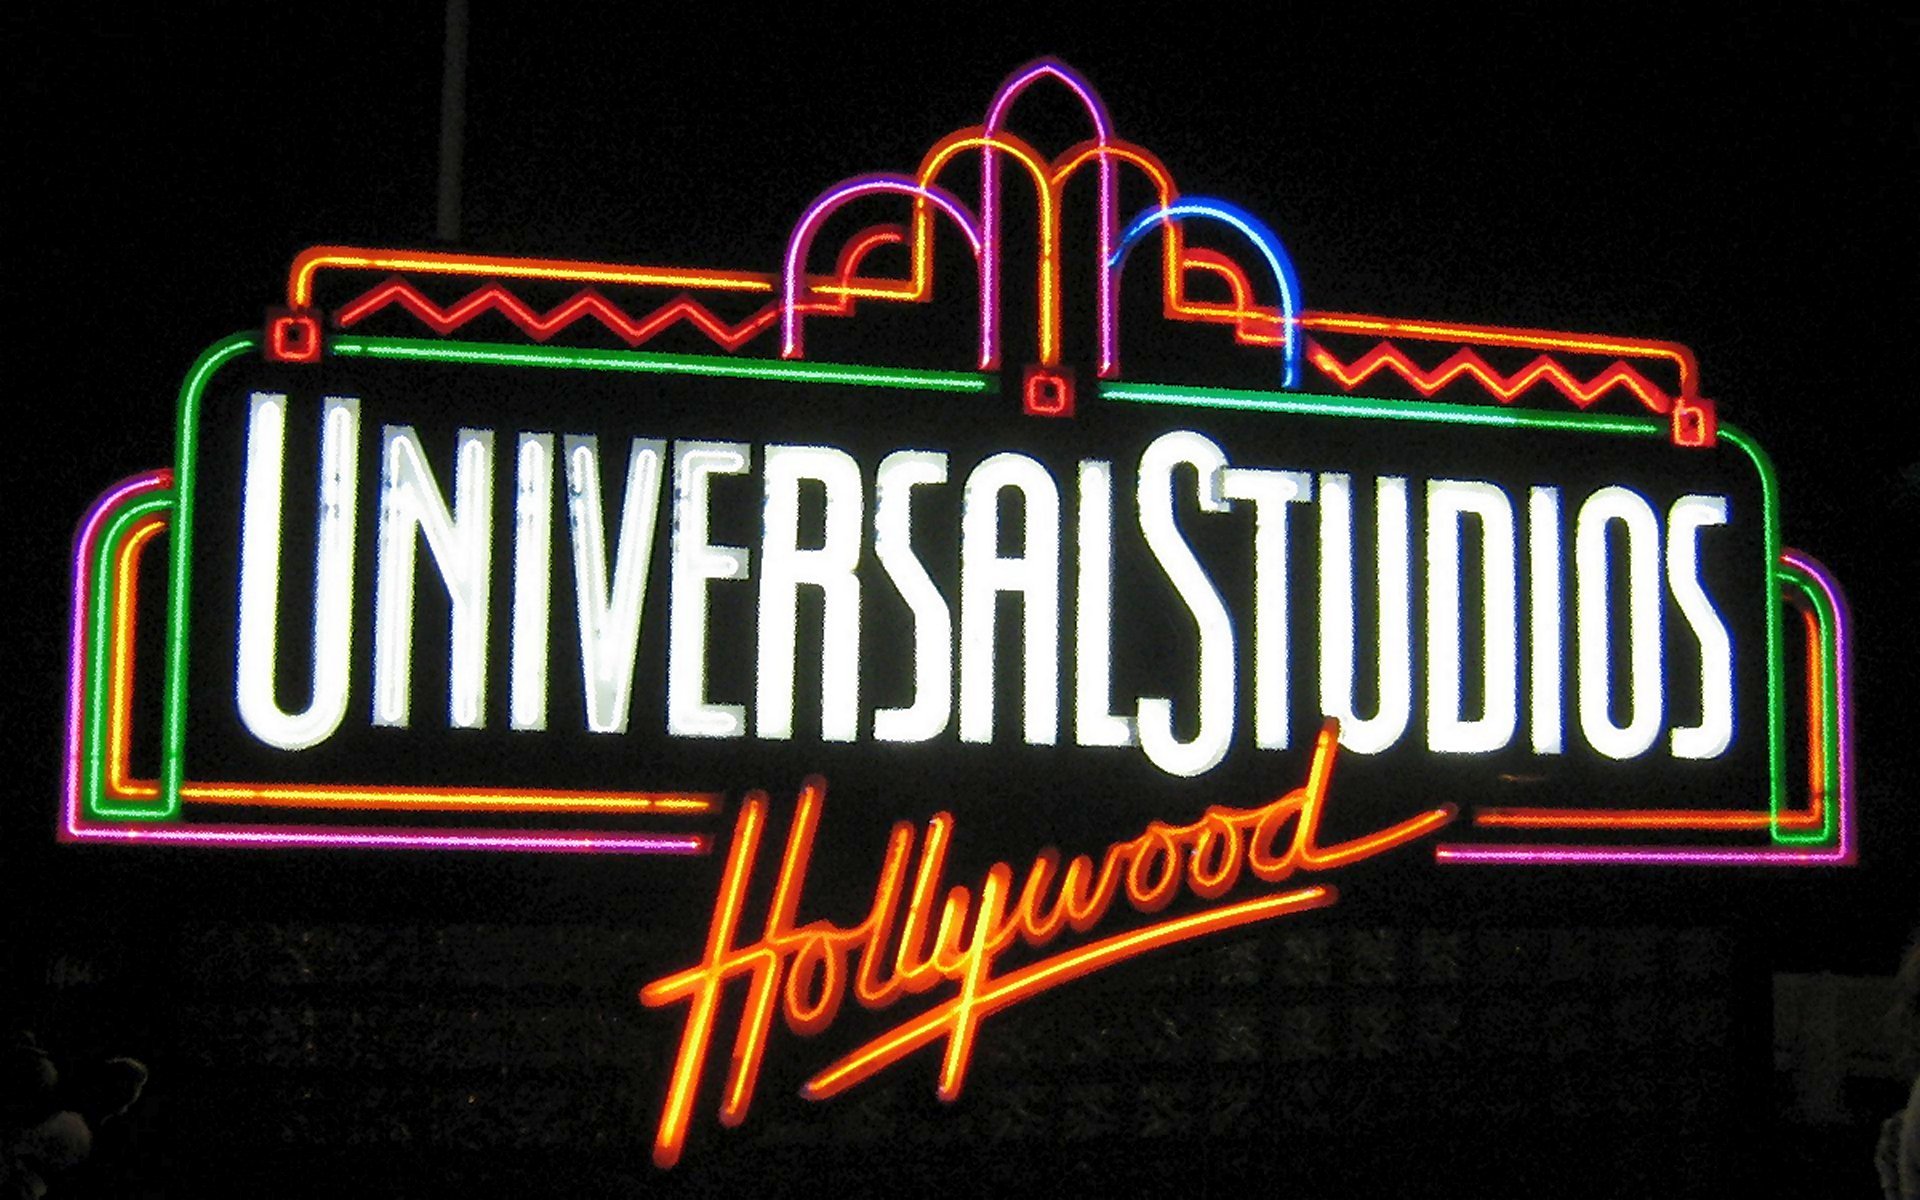 Universal Studios Hollywood Los Angeles 1920x1200 WIDE Wallpaper Jobs 1920x1200